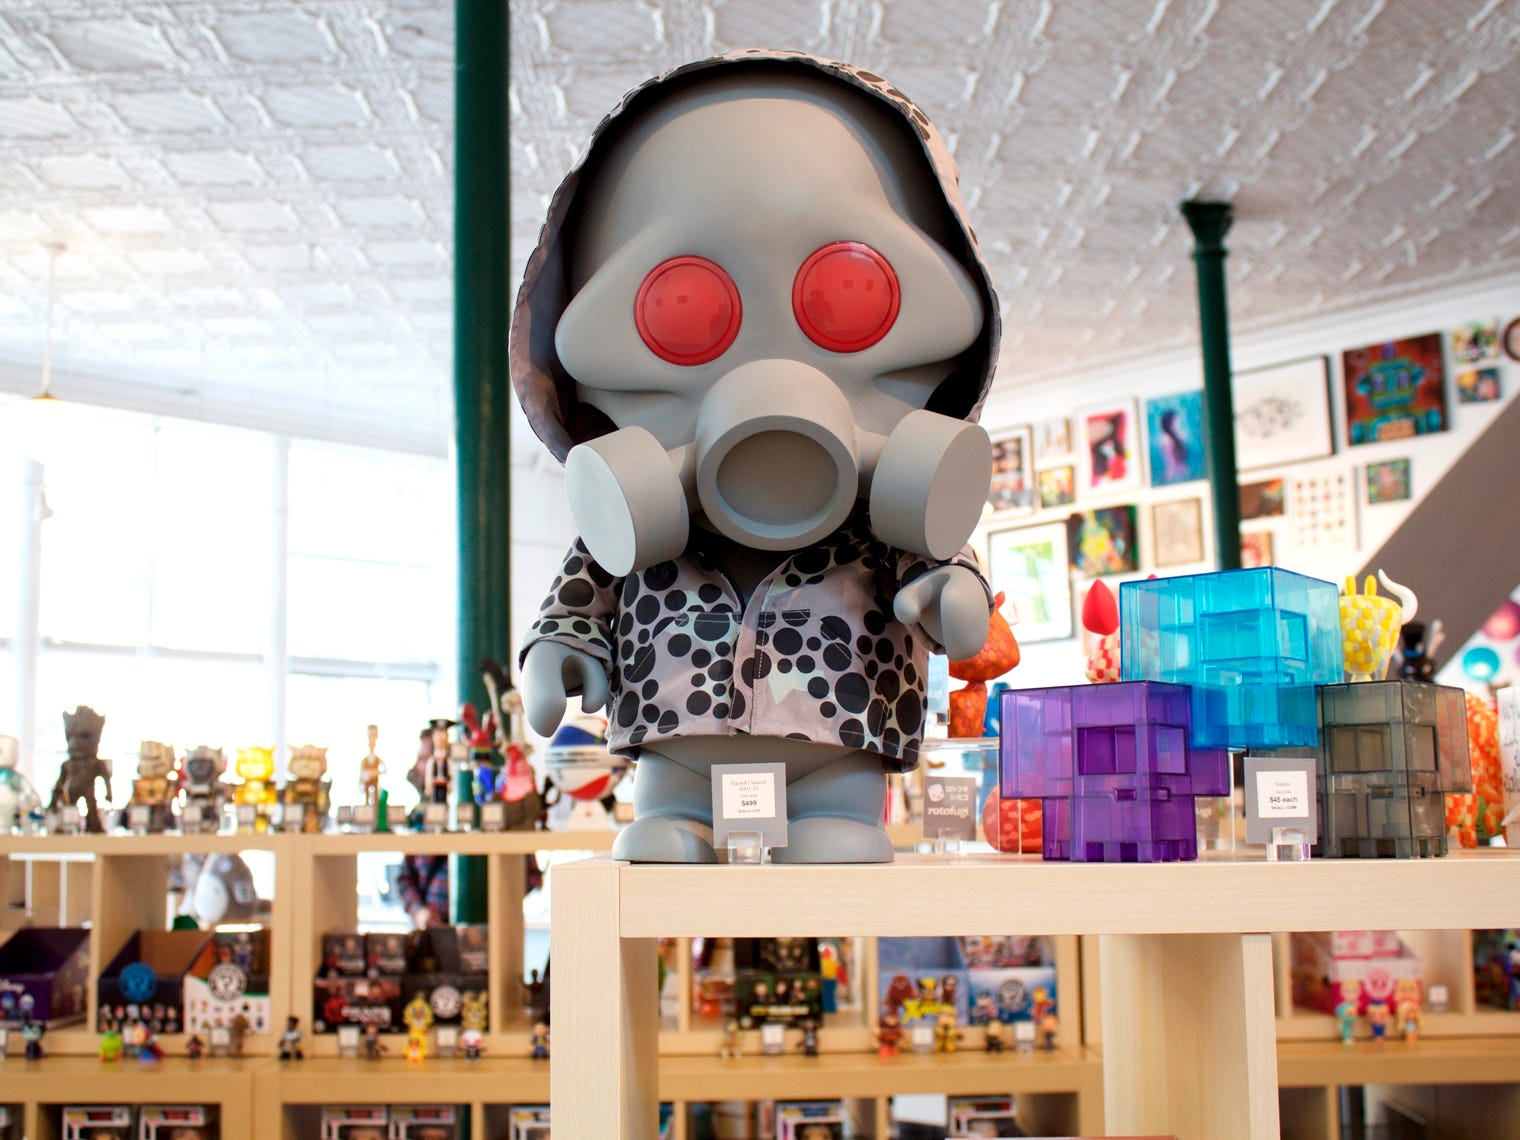 Toys show their arty side at Rotofugi, a Chicago shop specializing in stylish playthings and pop-culture collectibles.